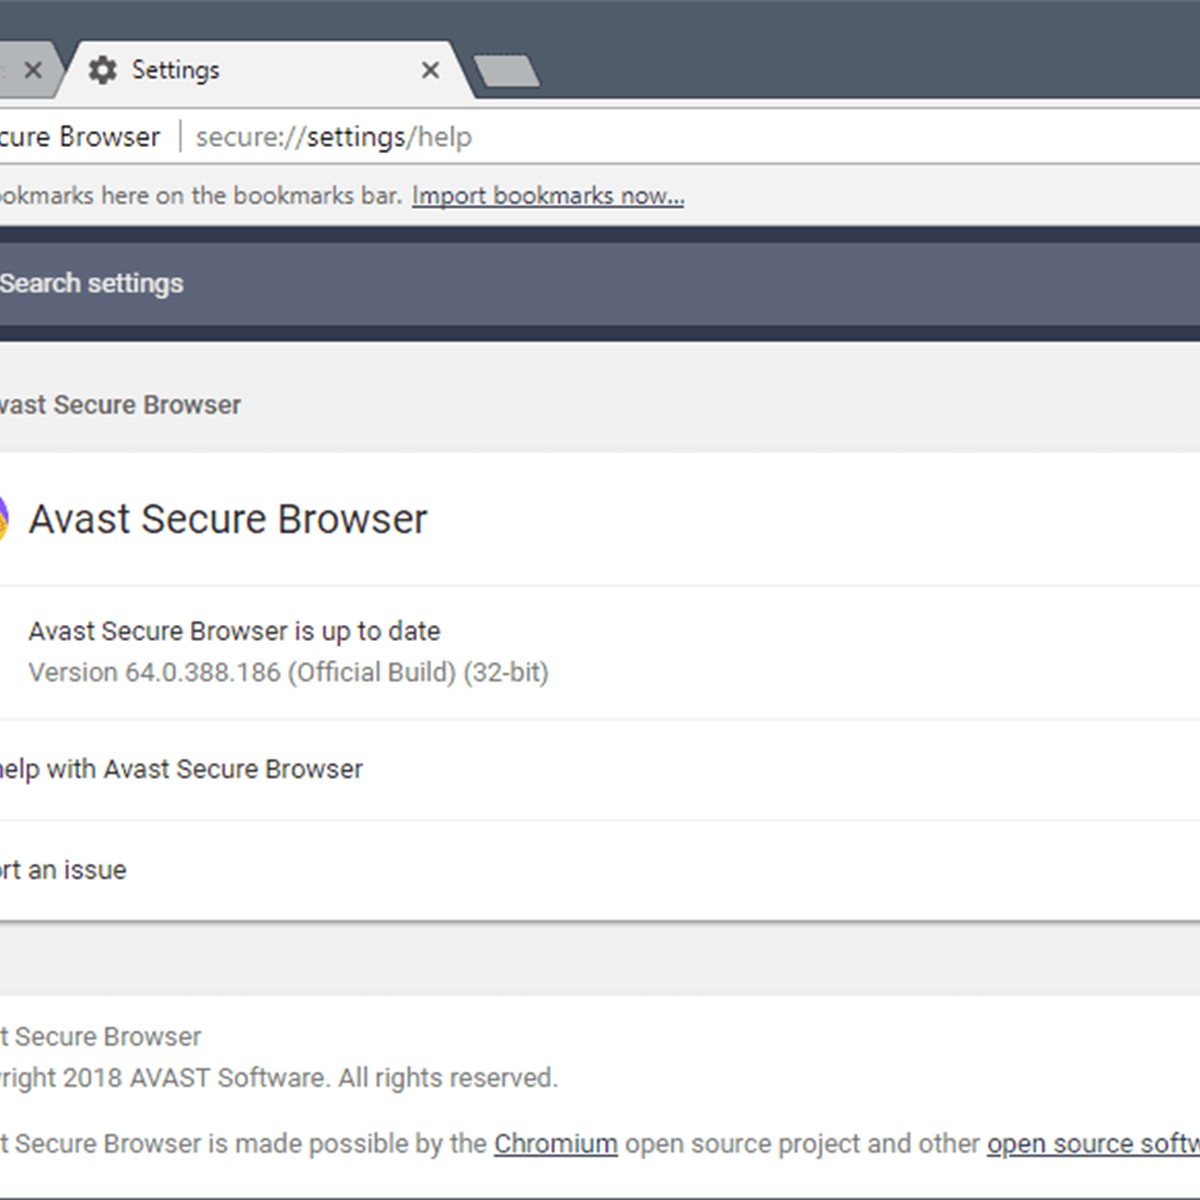 Avast Secure Browser Alternatives and Similar Software